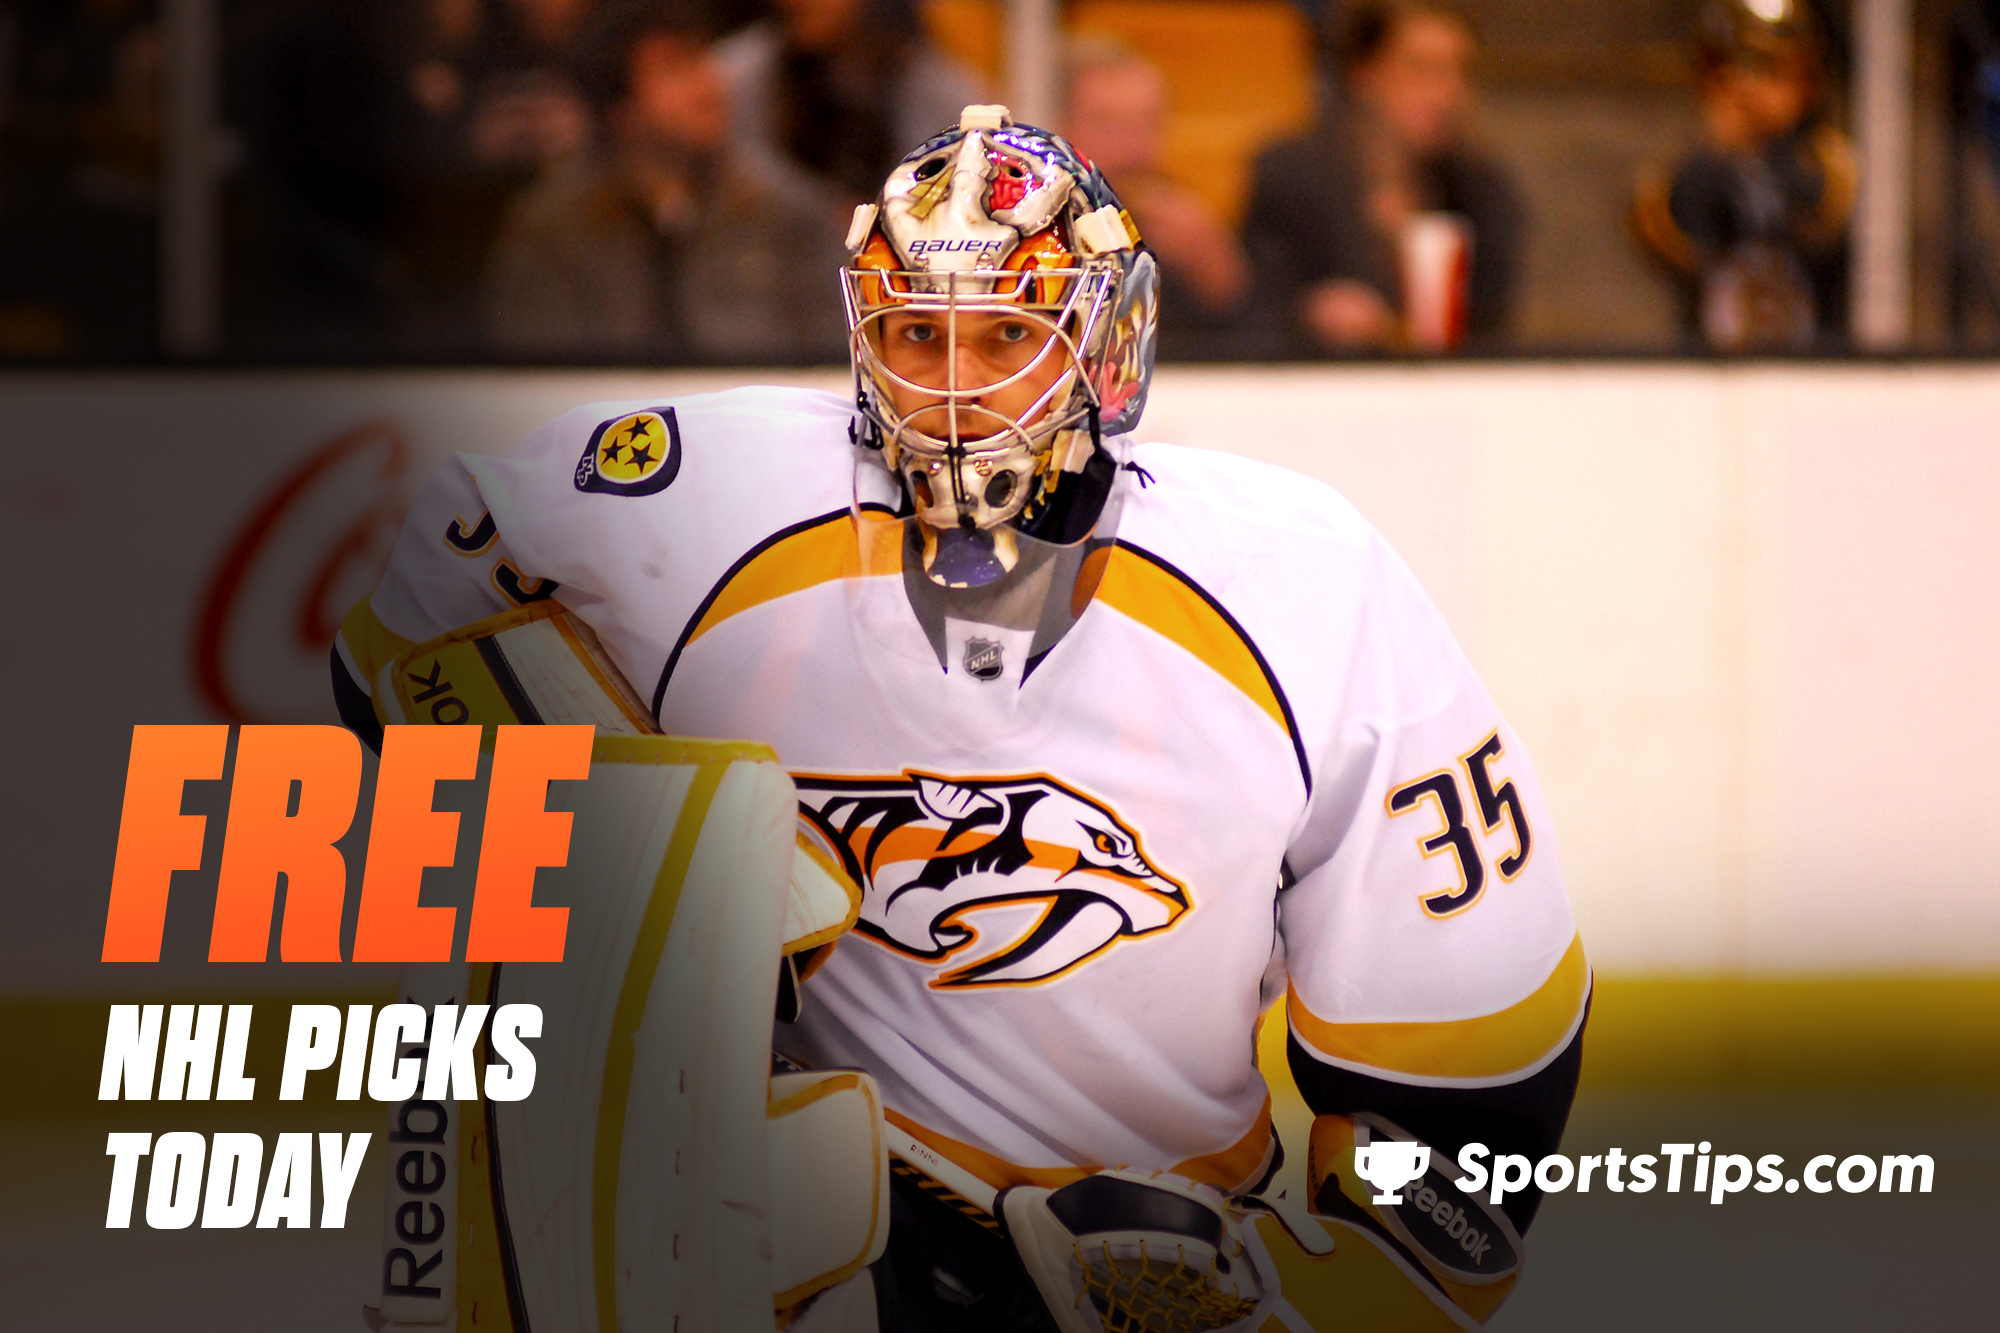 Free NHL Picks Today for Tuesday, February 23rd, 2021